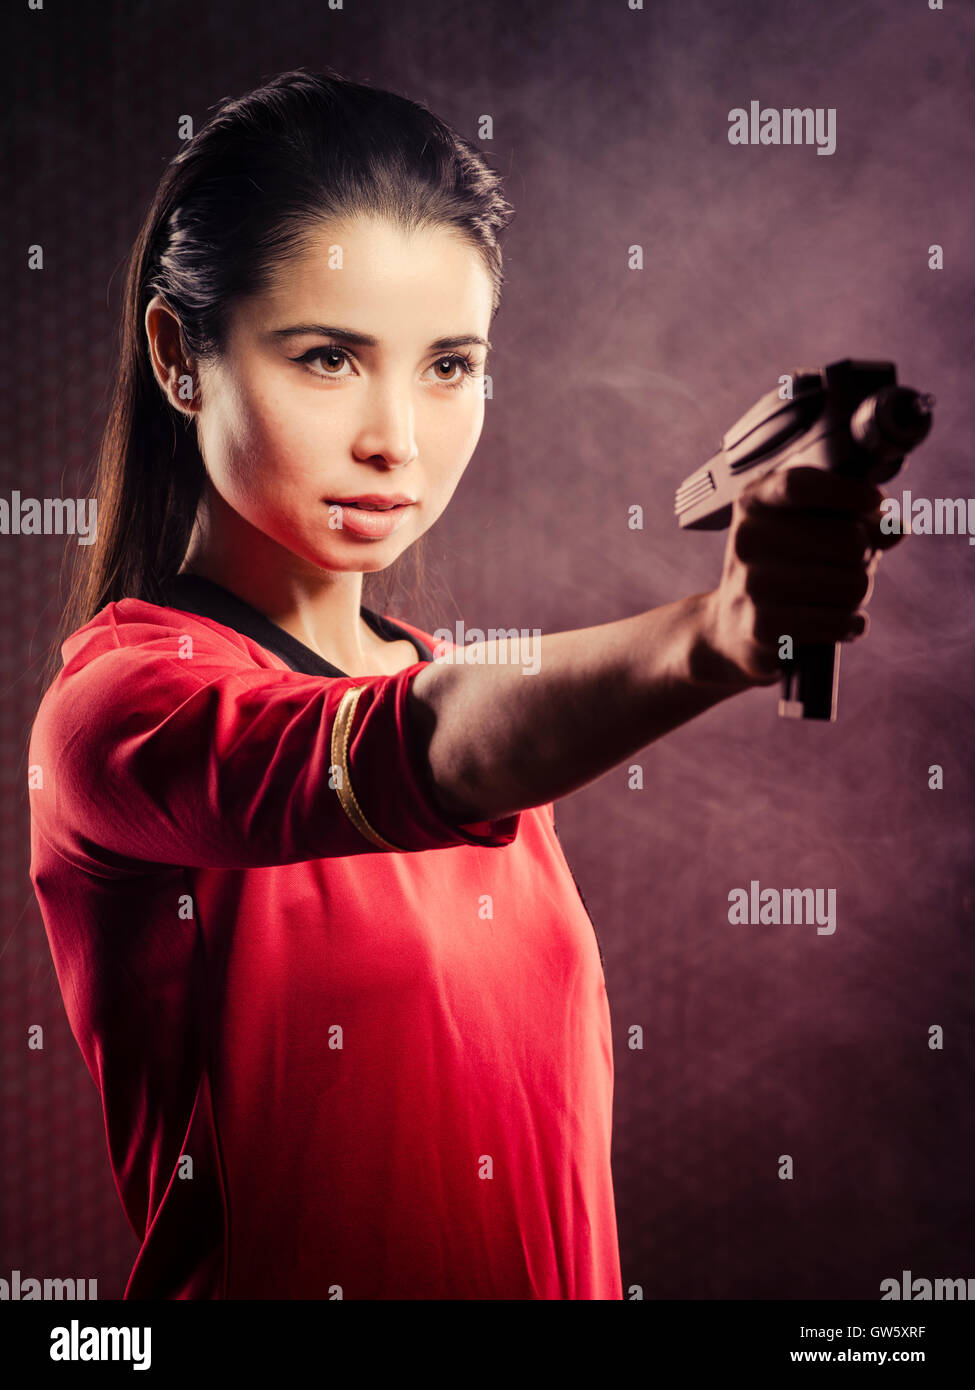 Beautiful trekkie wearing Star Trek original series 1967 red shirt uniform with original phaser - Stock Image